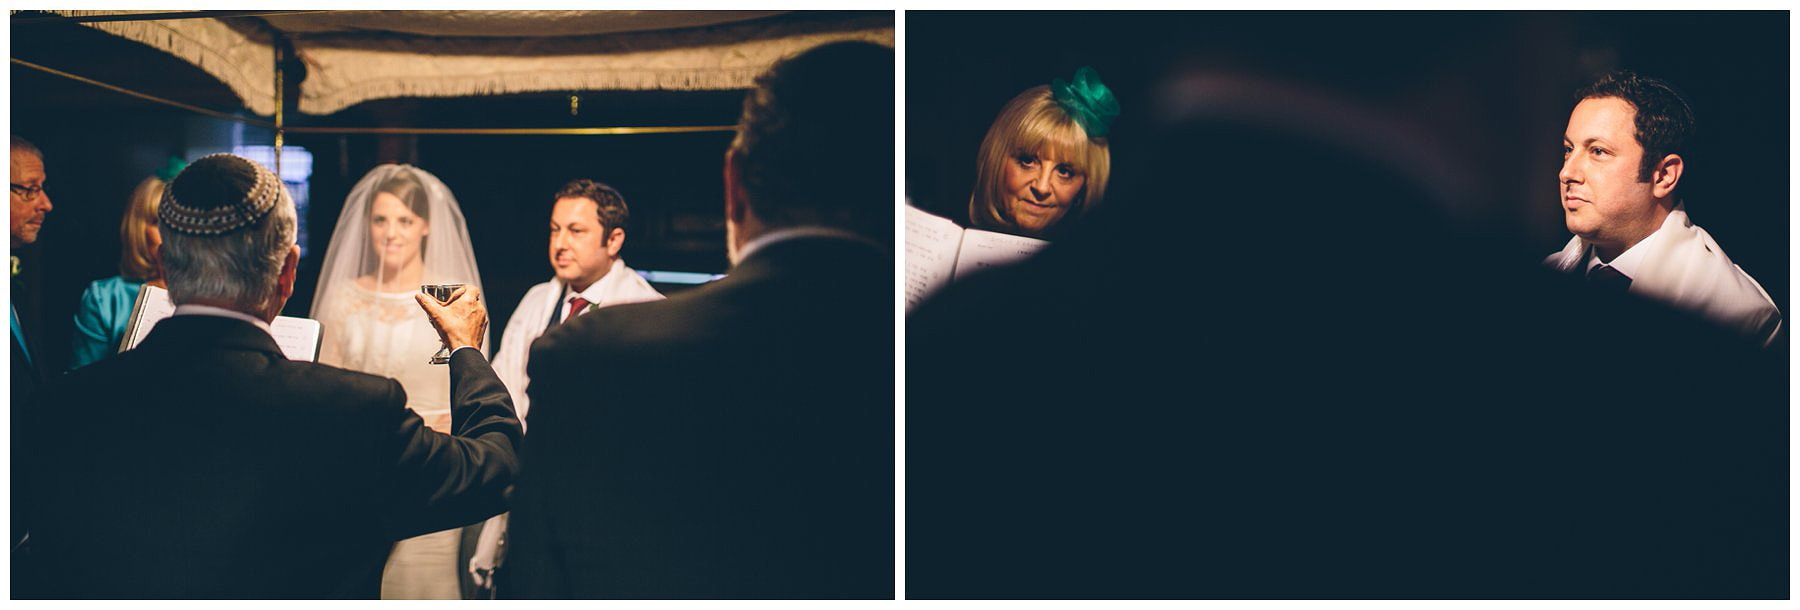 Bevis_Marks_Synagogue_Wedding_Photography_0056